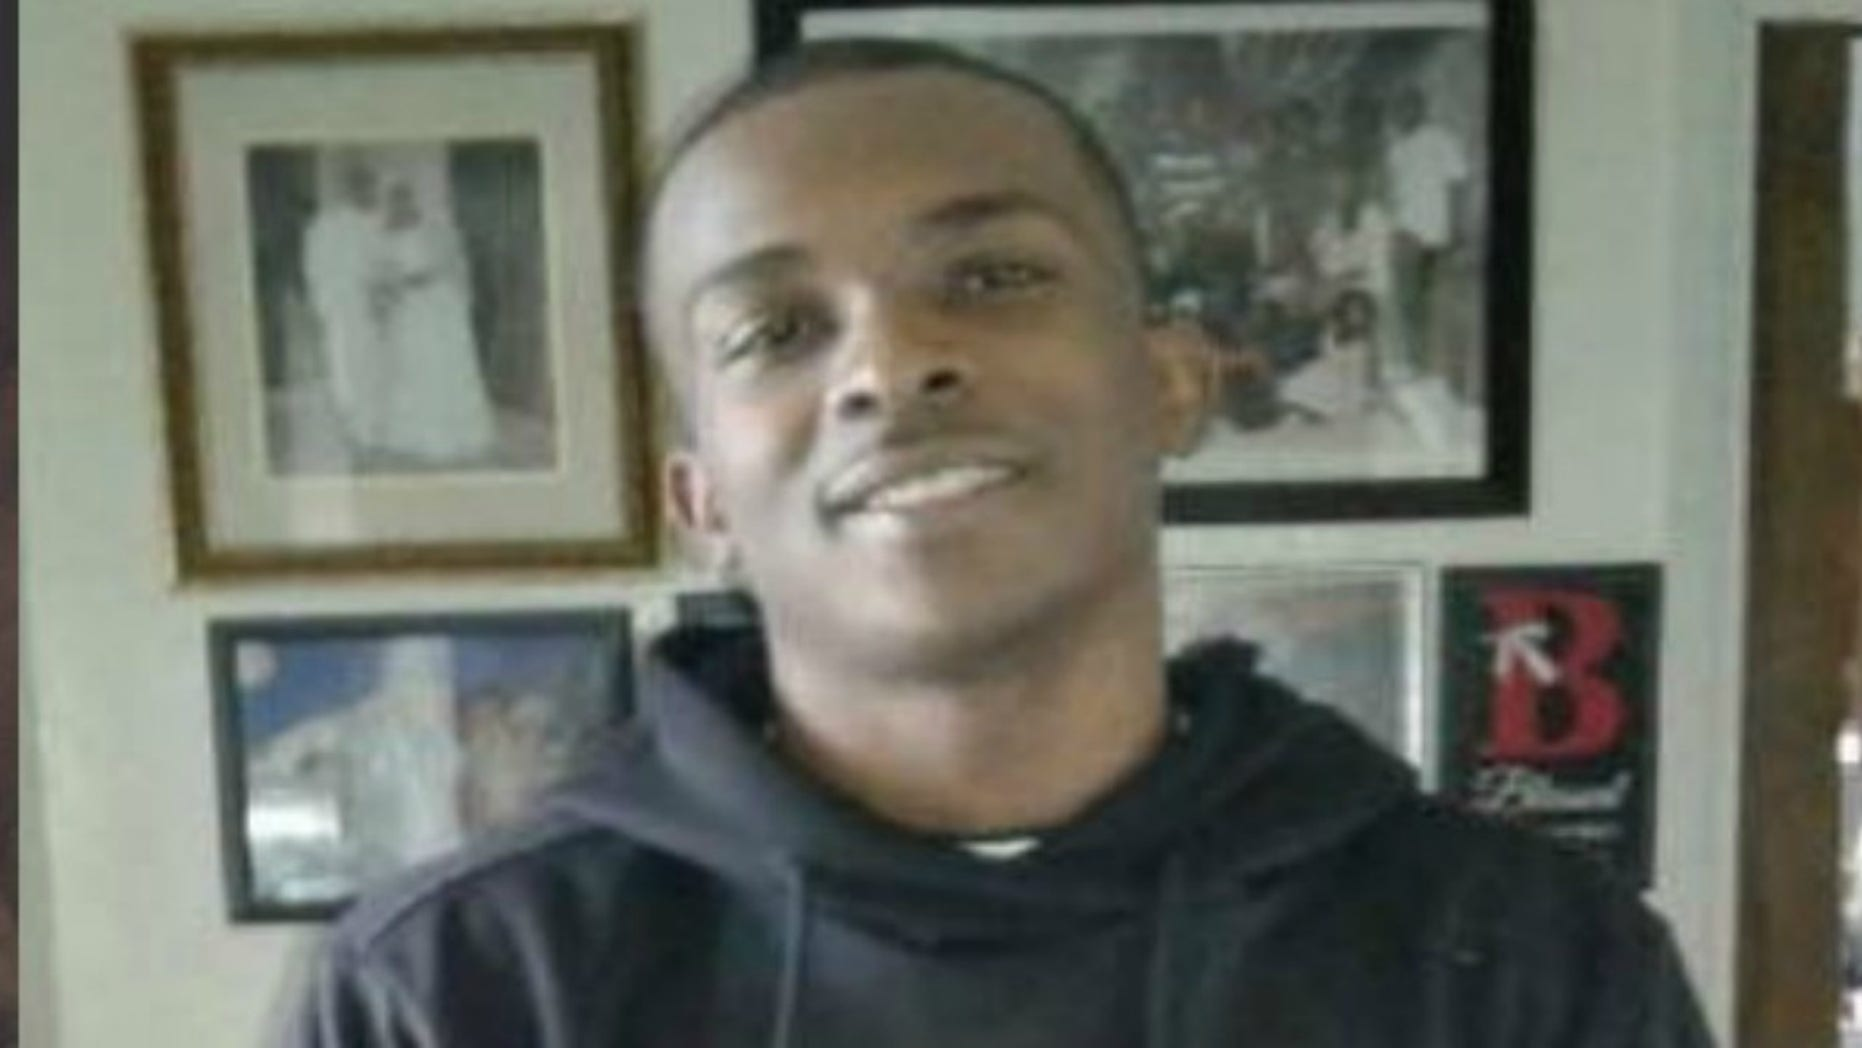 Stephon Clark, 22, was shot and killed Sunday night in the backyard of his family's home after police responded to a call of someone breaking car windows.